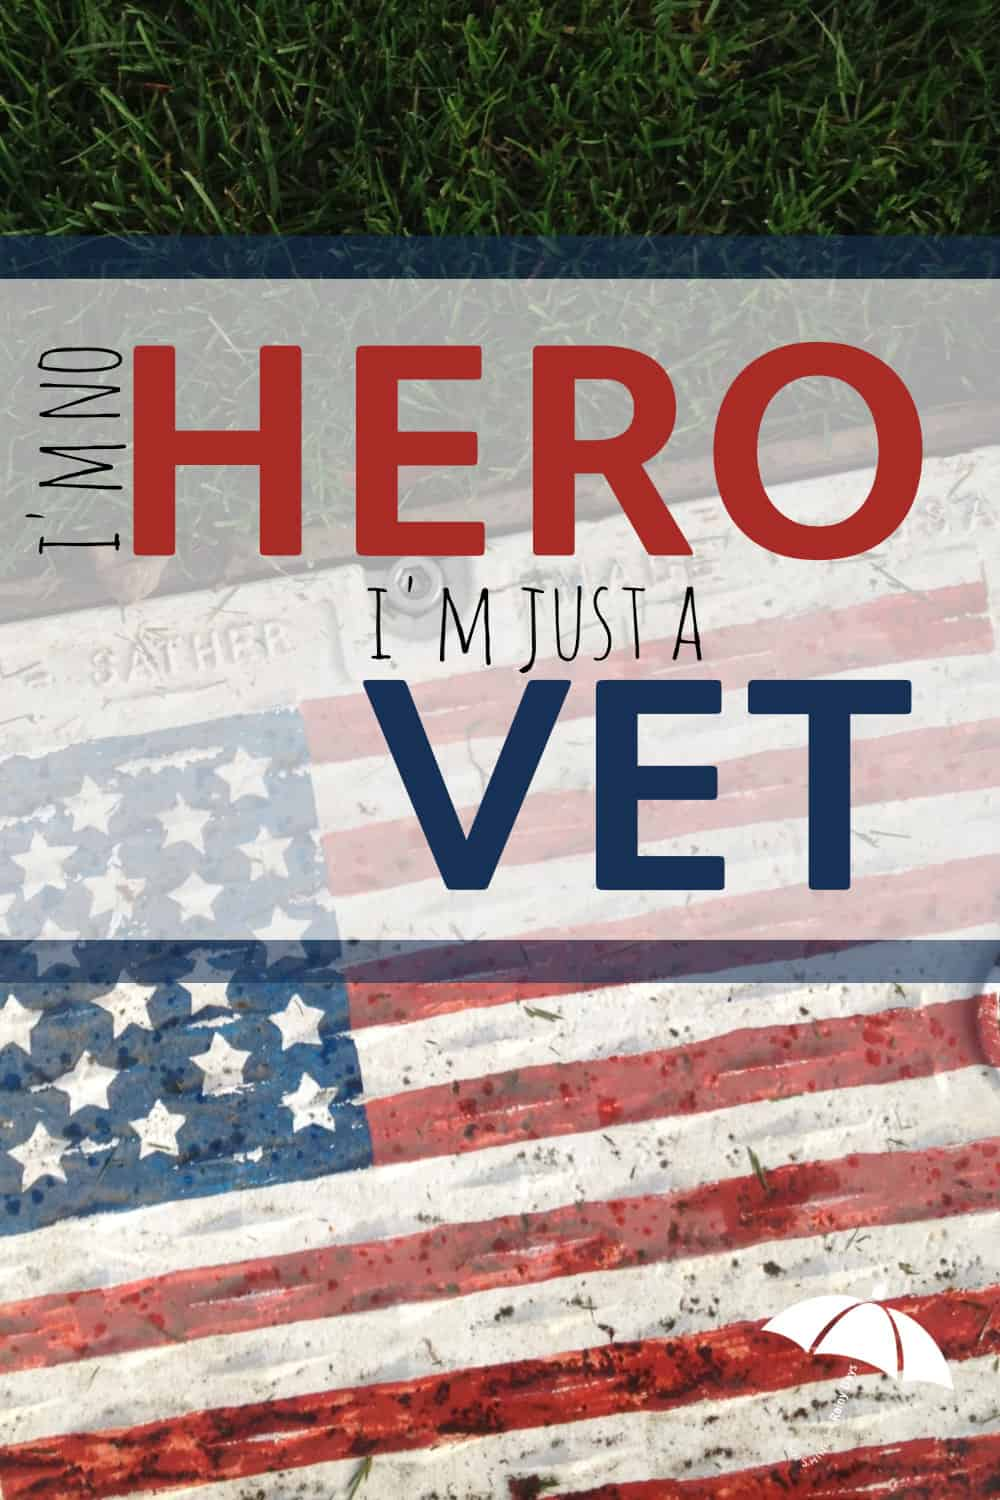 What makes a hero? There are heroes who walk among us every day and we don't even know it. I'm no hero, I'm just a veteran.